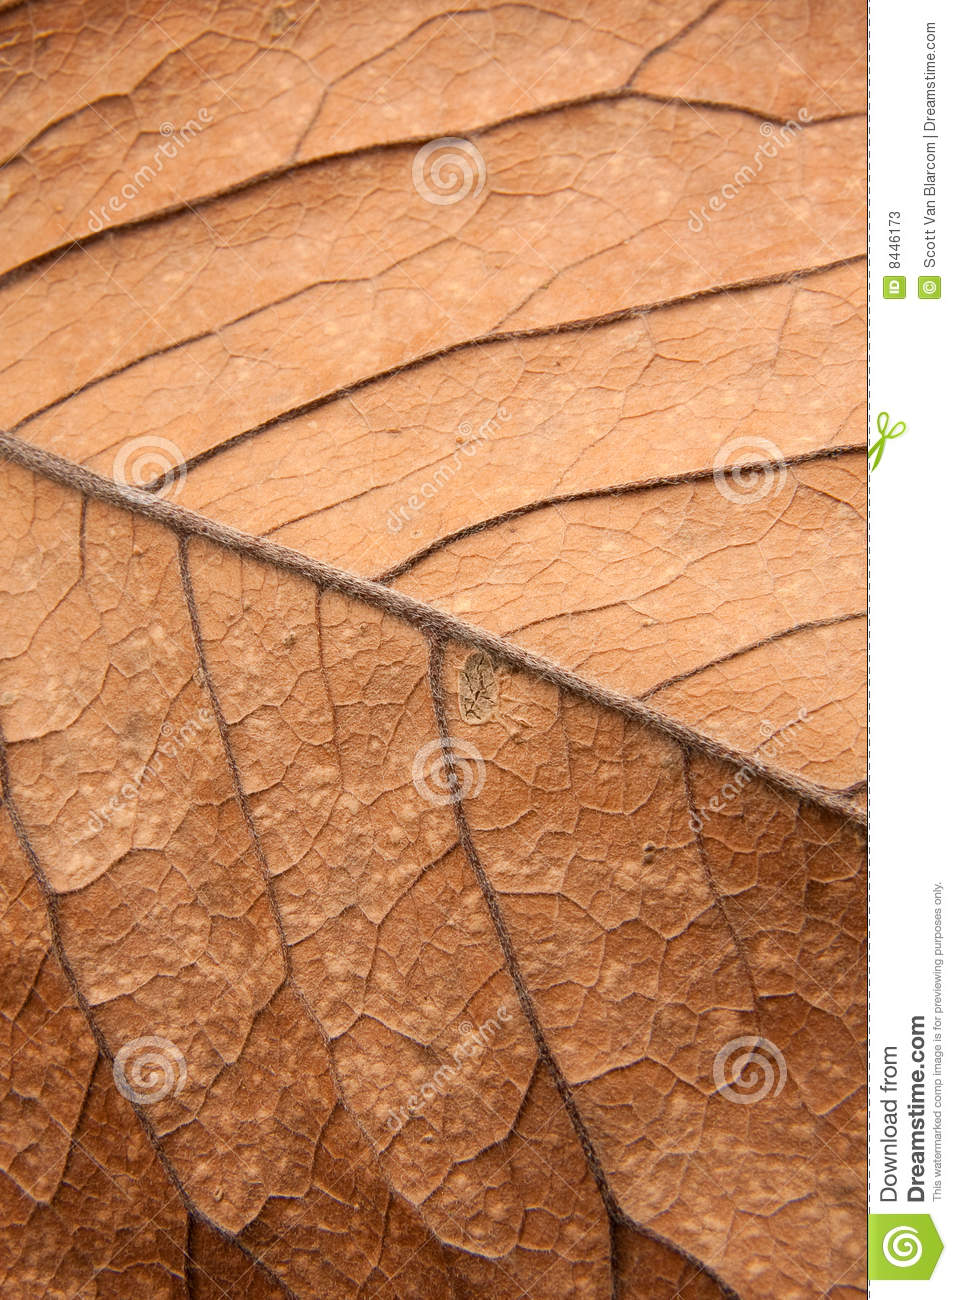 Close up background texture of brown leaf